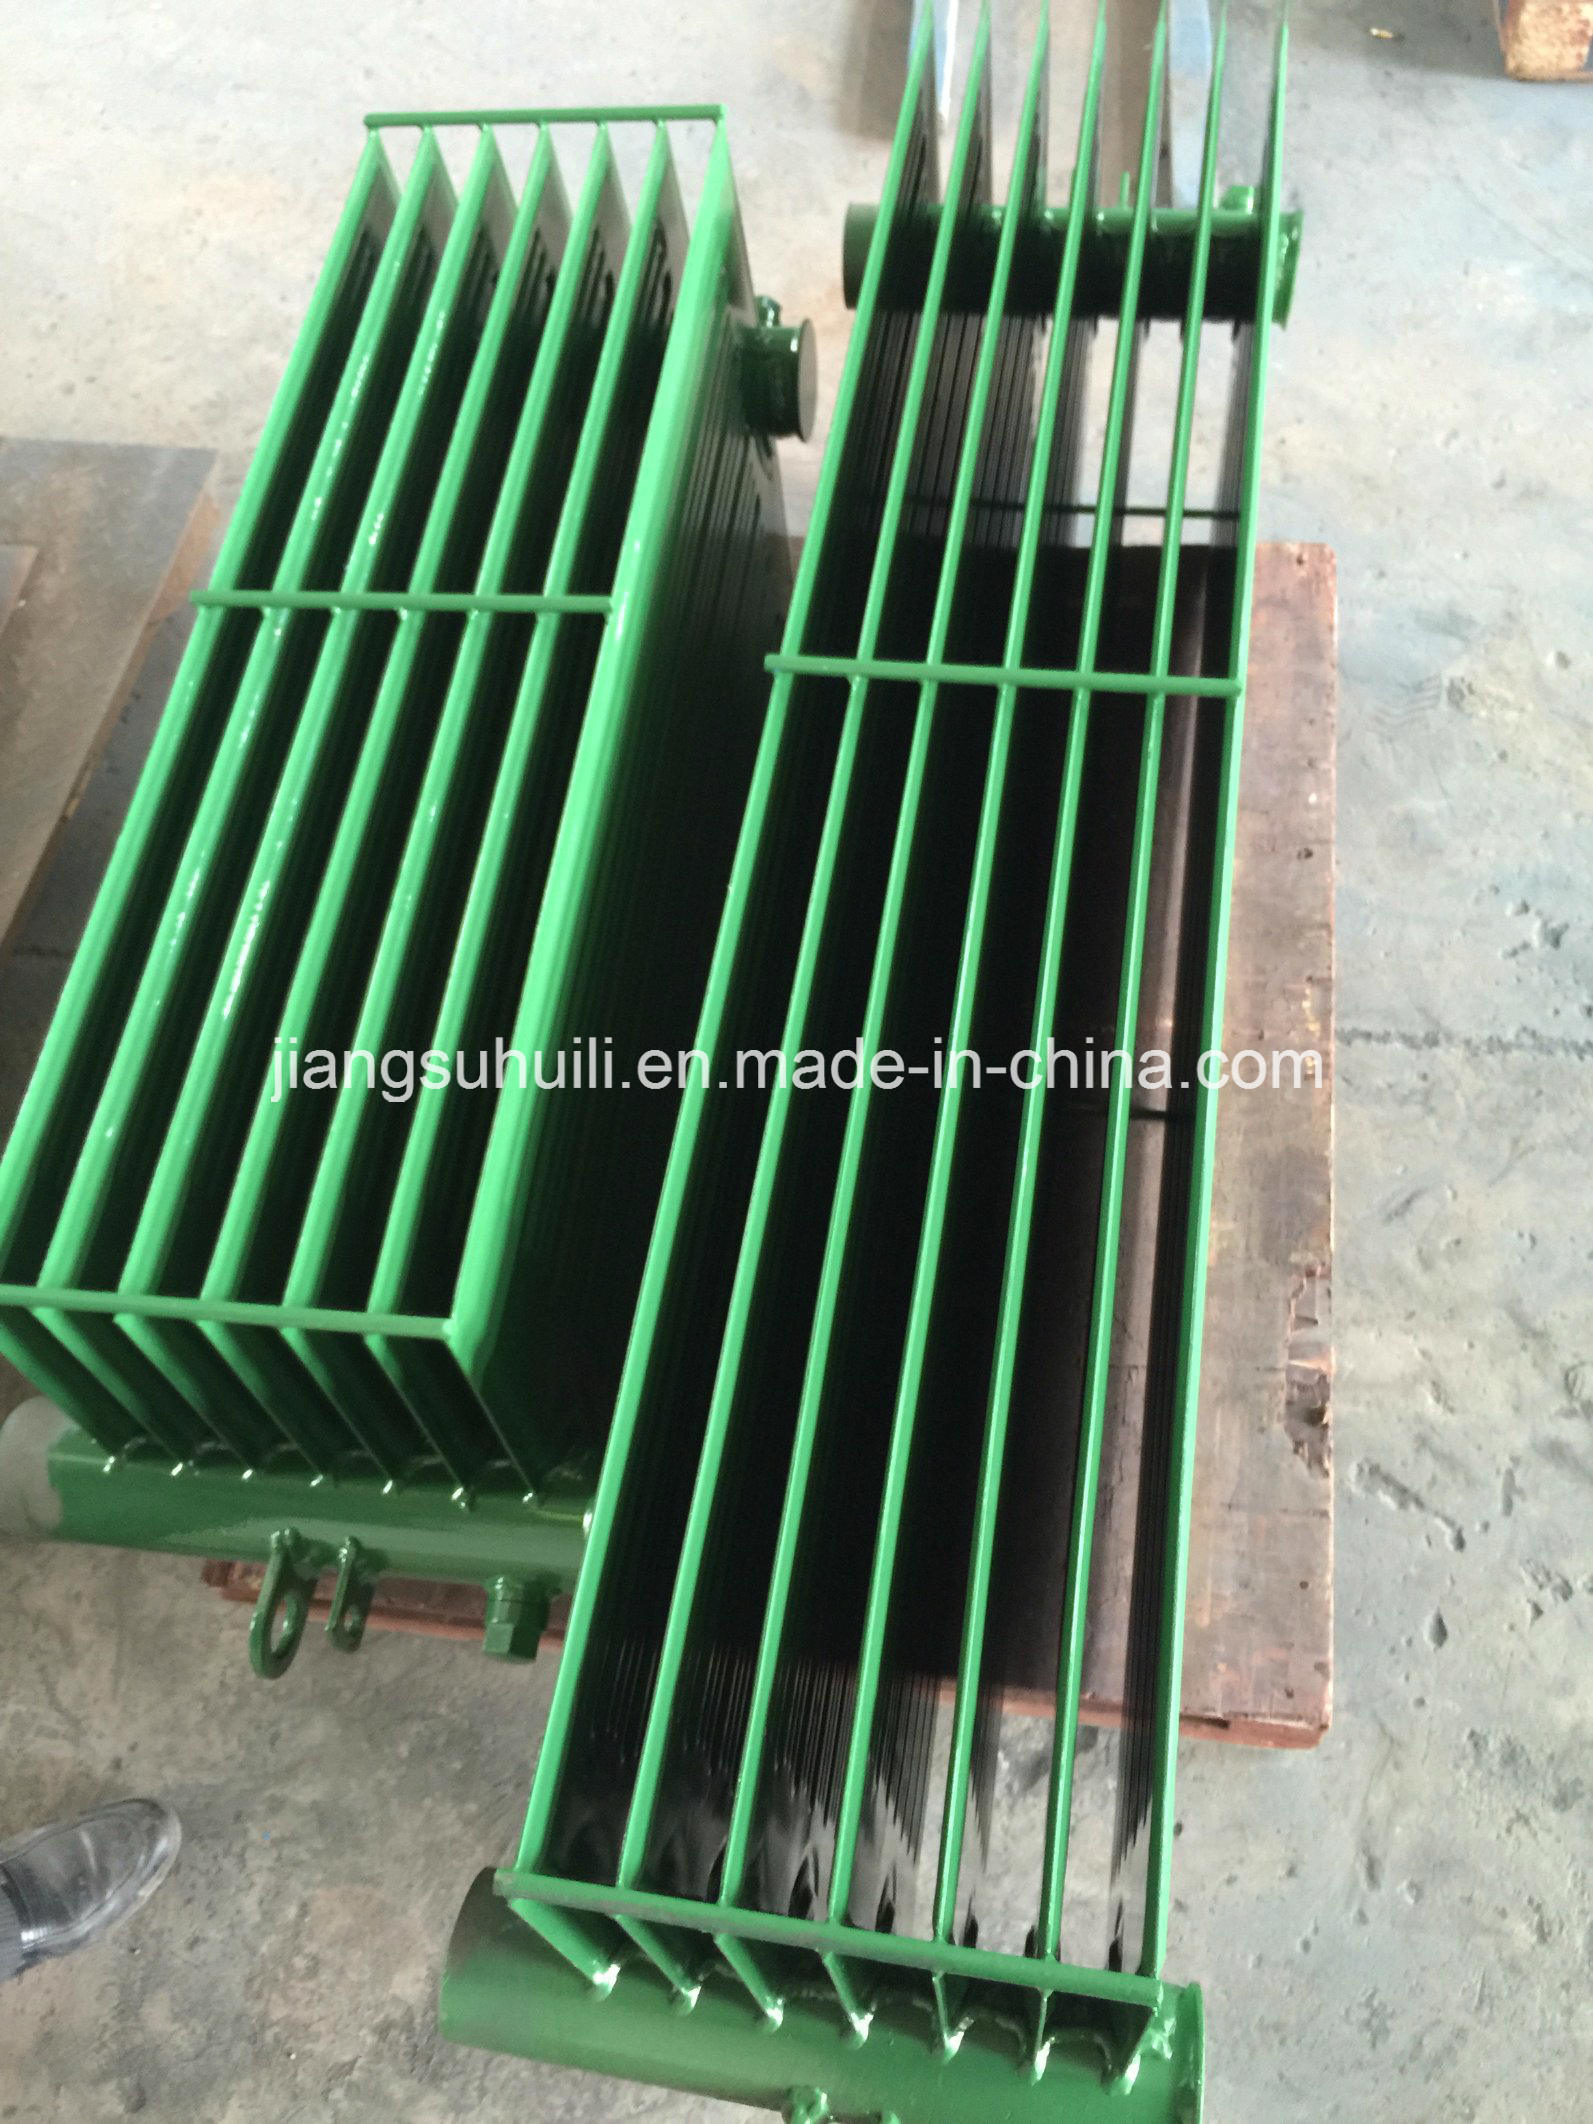 2000kVA Oil-Immersed Transformer Radiator